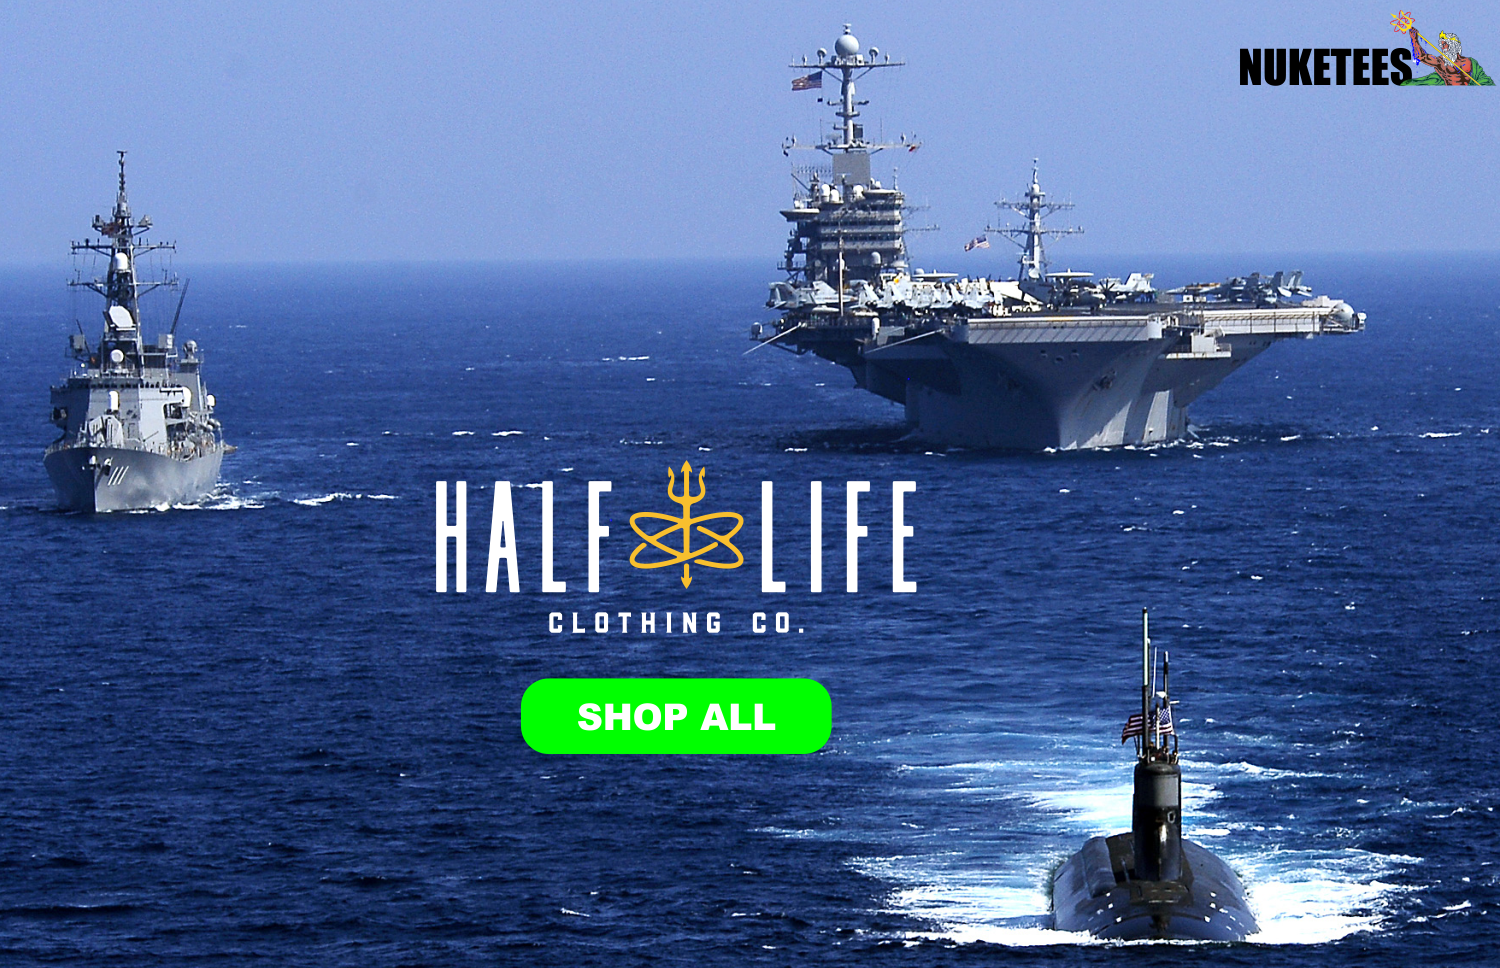 Half-Life Clothing Company - Navy Nuclear Power